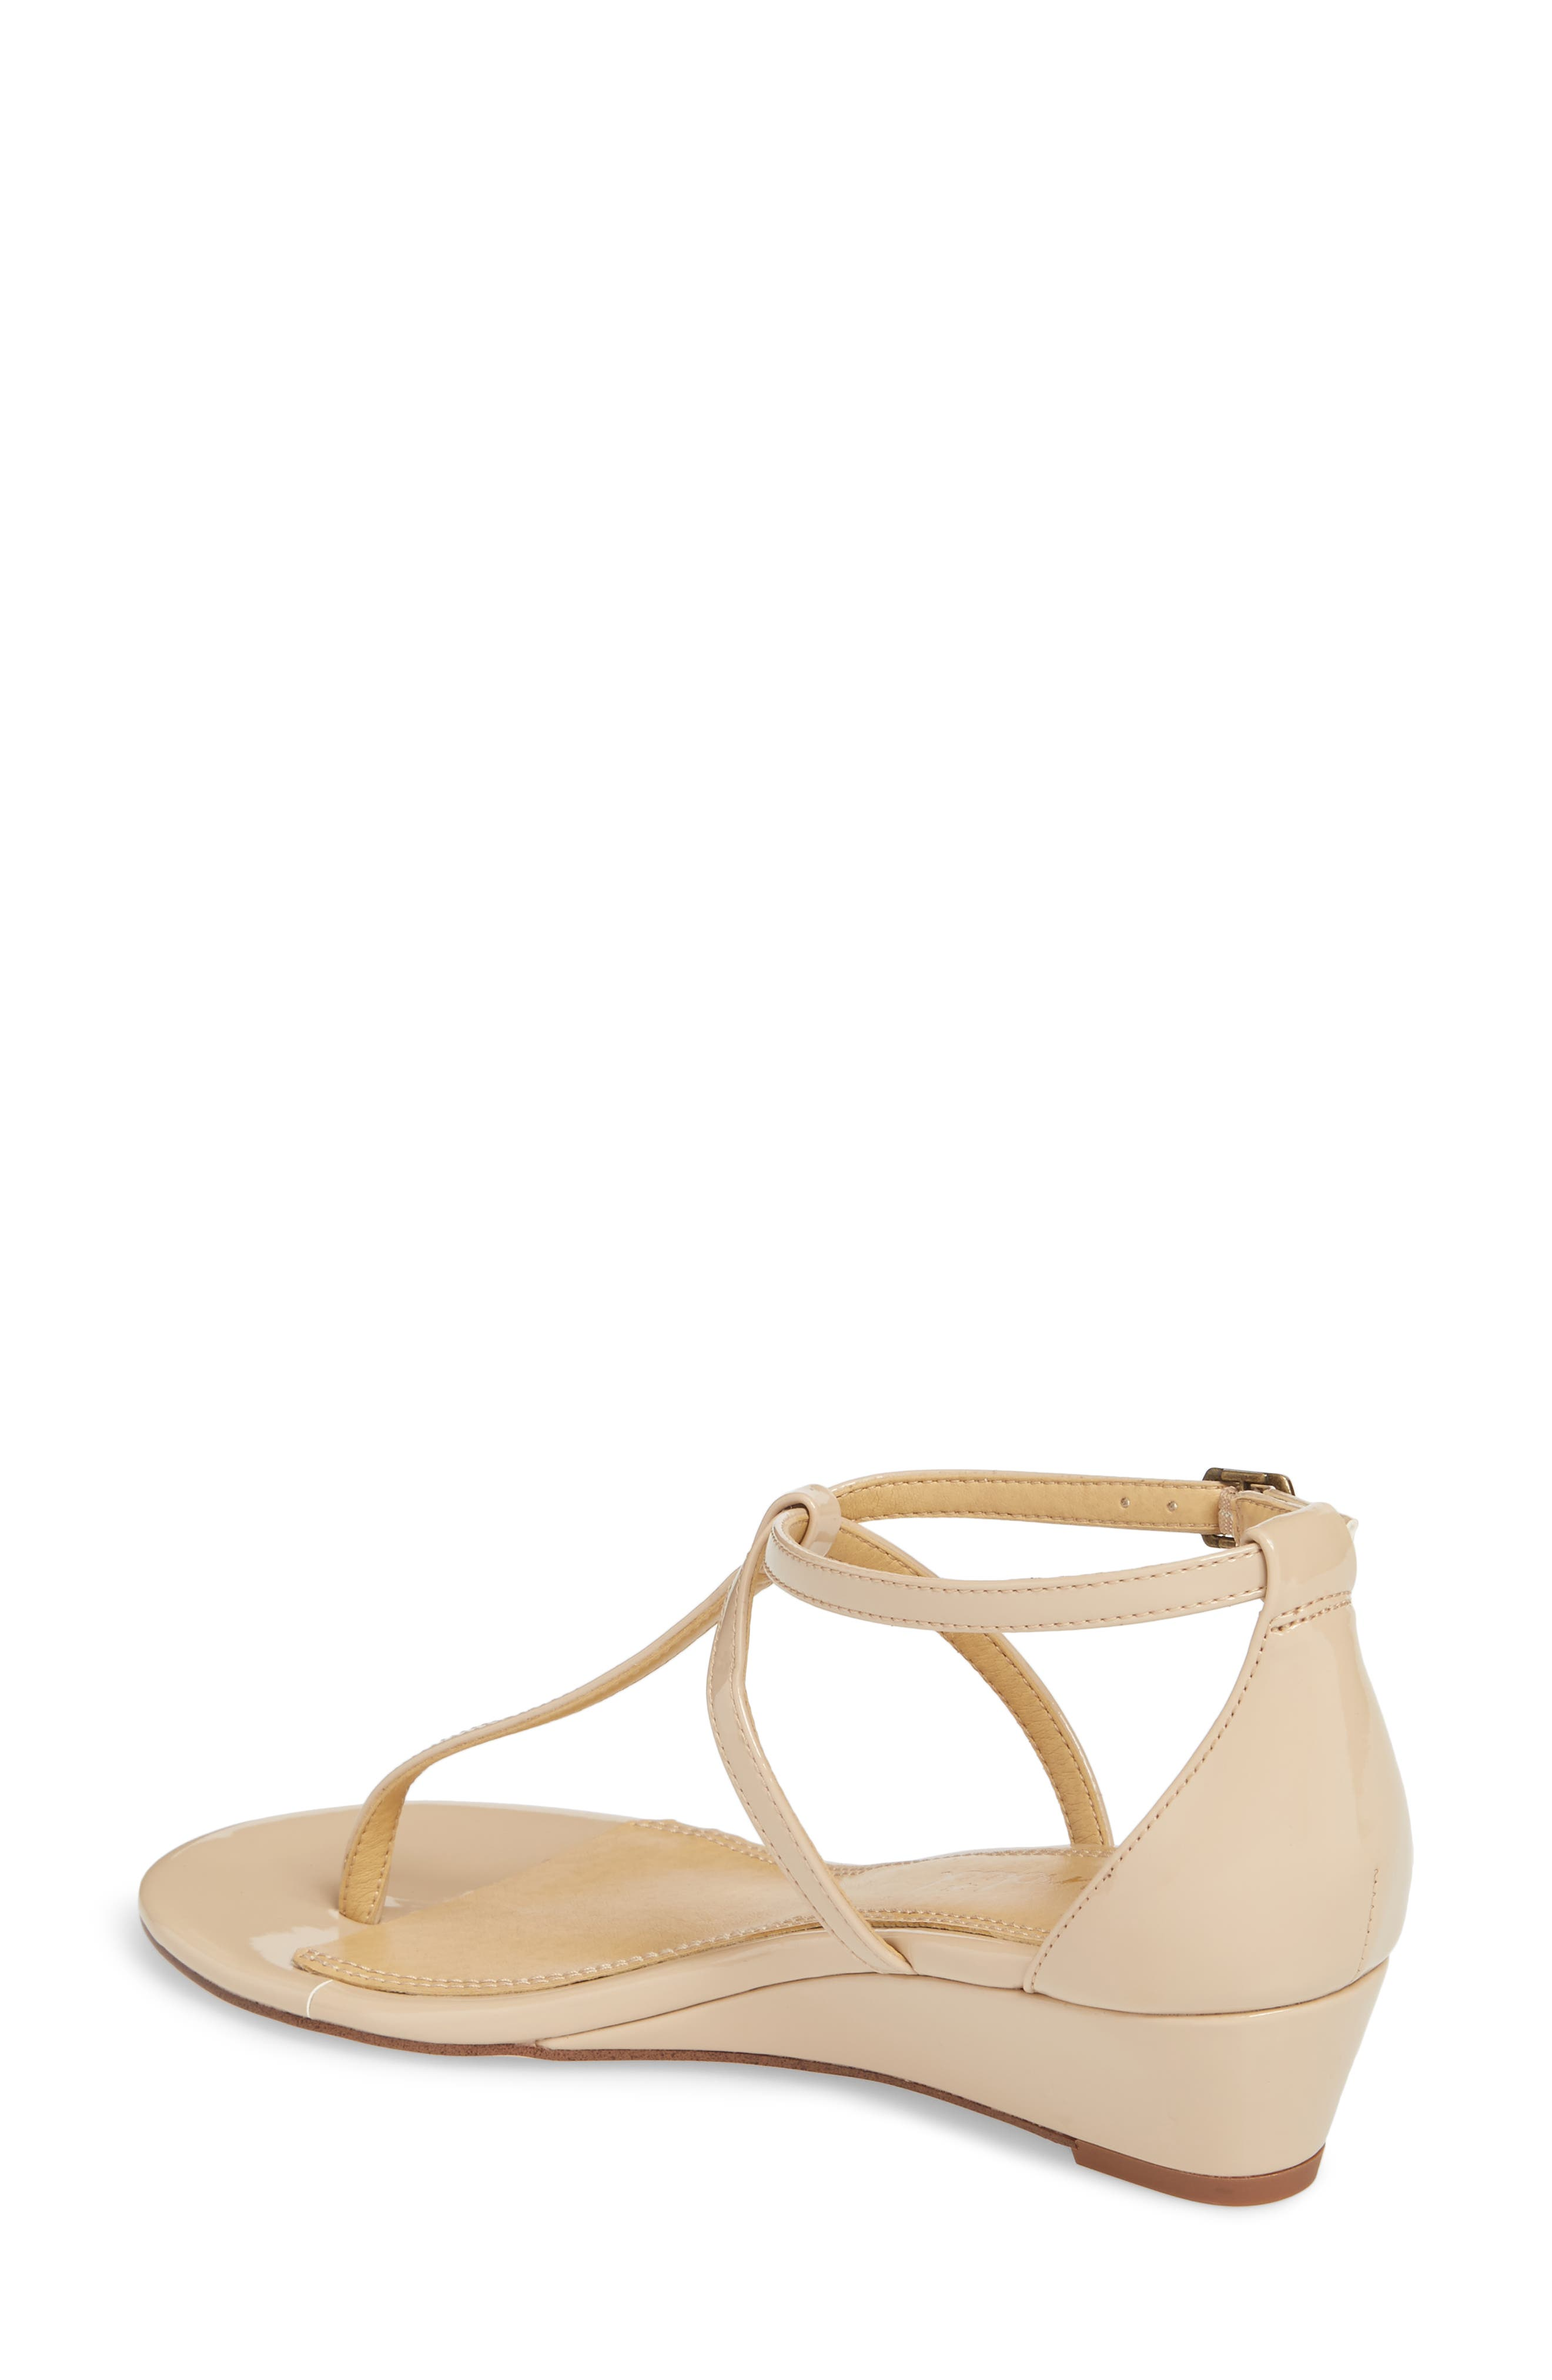 Bryce T-Strap Wedge Sandal,                             Alternate thumbnail 9, color,